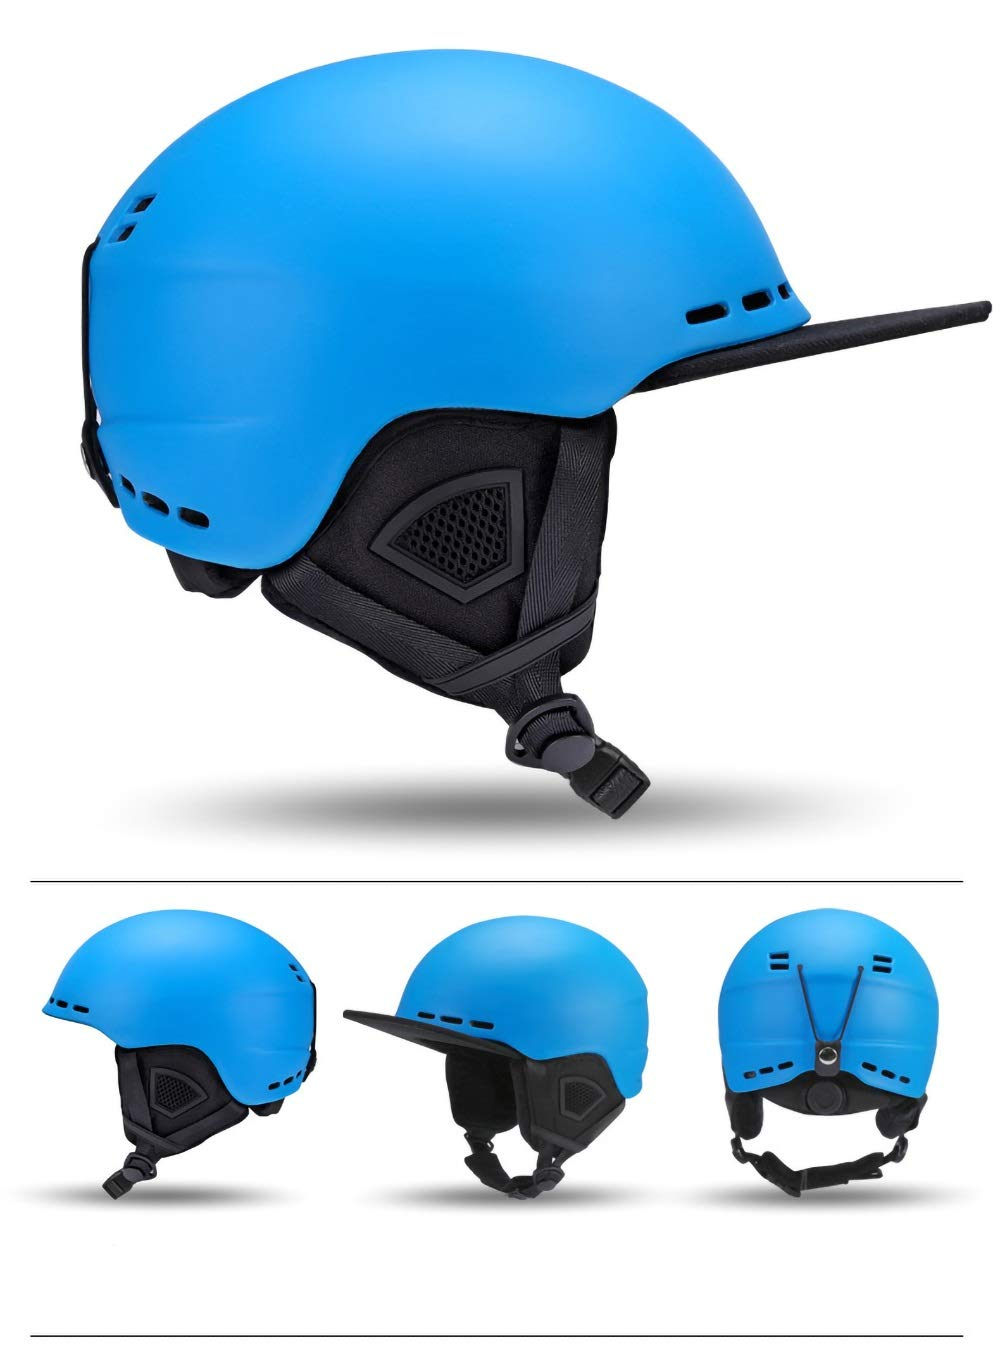 KTH Safety Adjustable Kids Bicycle Helmet, for Cycling, Skating, Scooting, Skiing(22-23 inch) (Color : Blue)